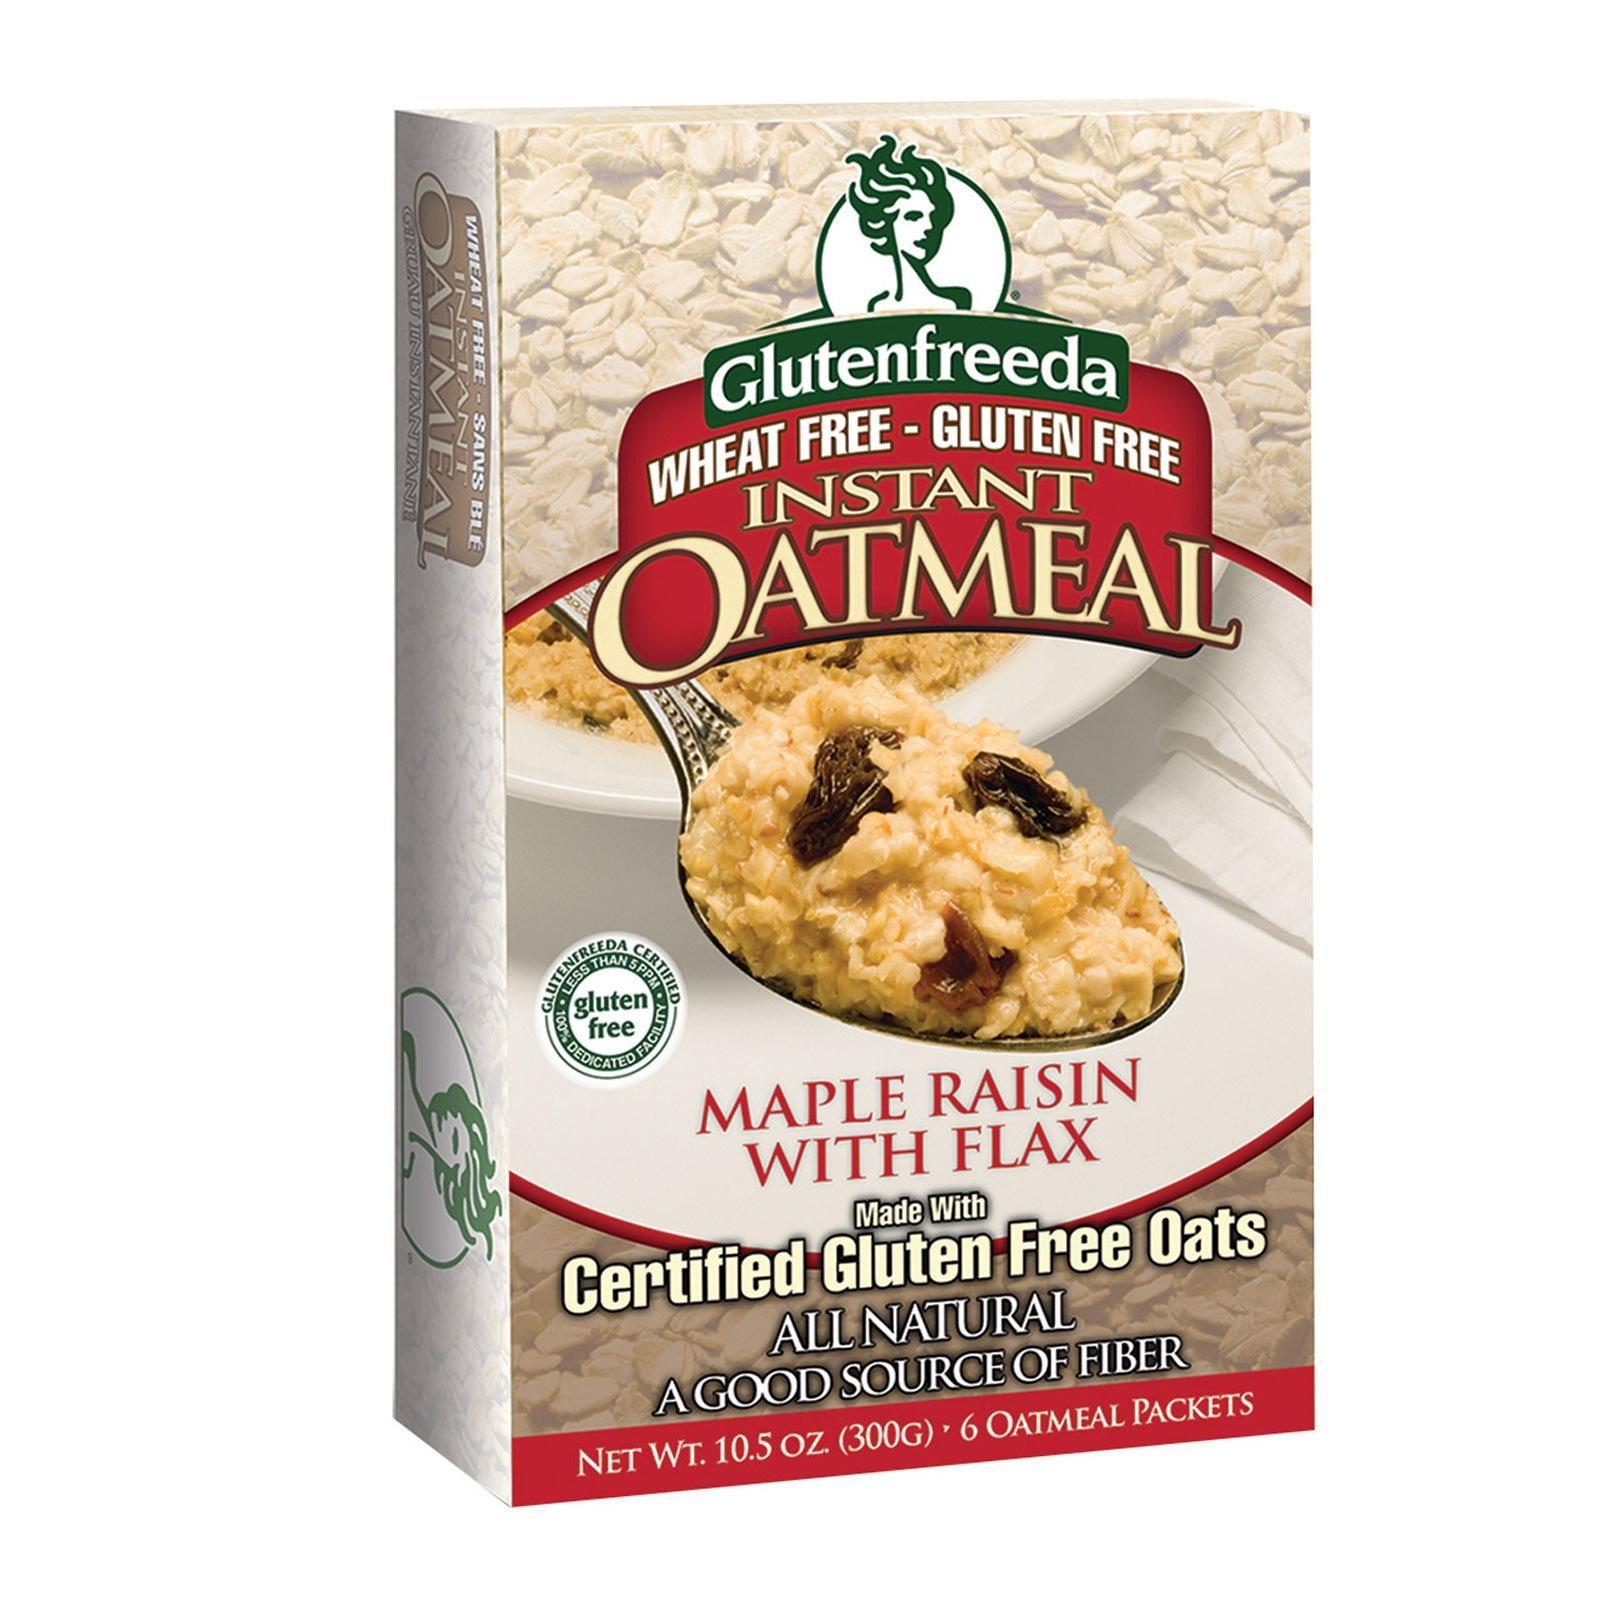 Gluten Freeda Instant Oatmeal - Maple Raisin - Pack of 8 - 11.05 Oz.